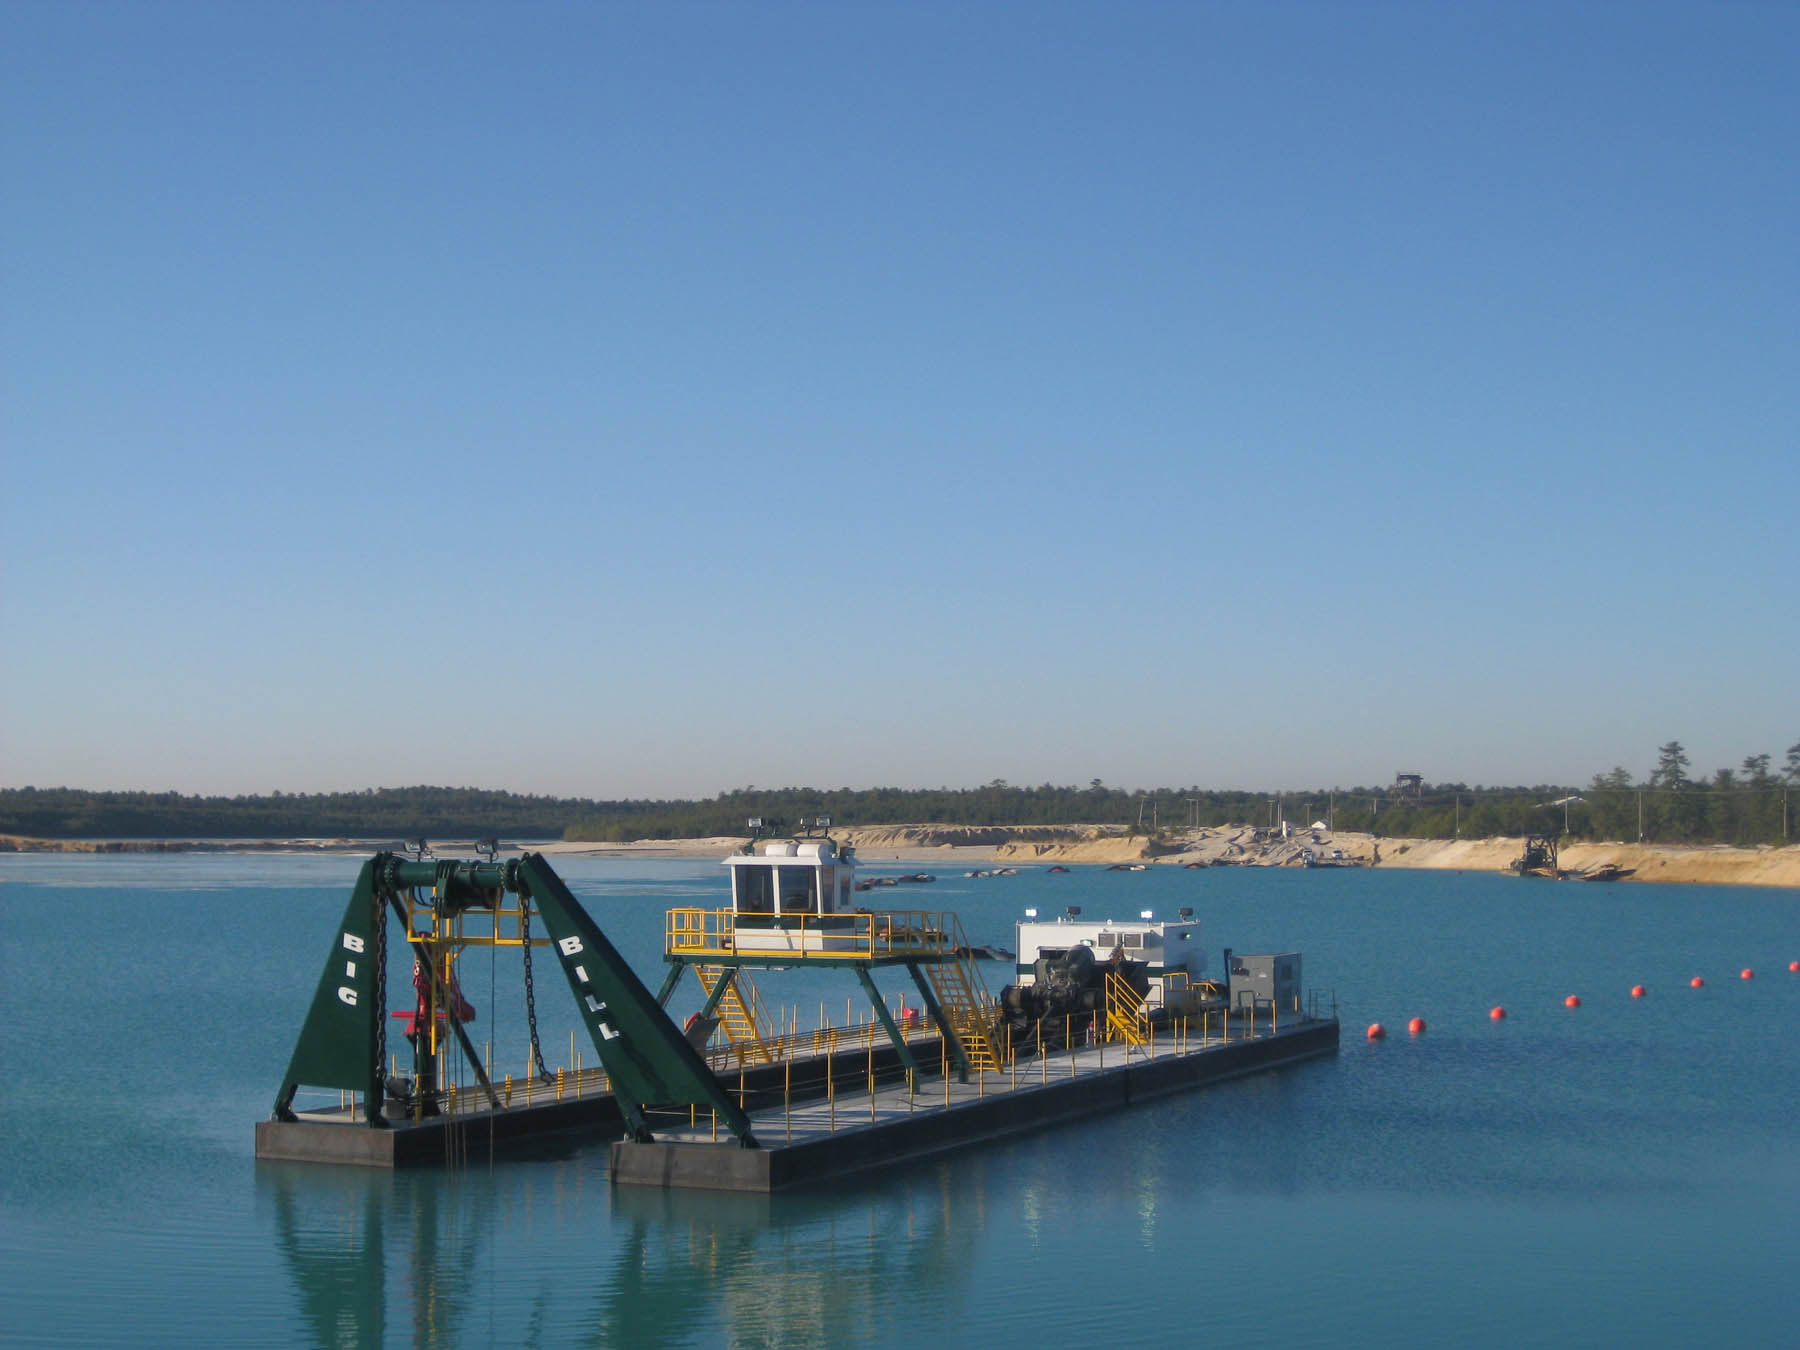 A DSC Marlin Class electric-powered dredge in an aggregate operation.  The dredge is used to dig into the bank of materials underwater and then pump the slurry to a processor on land.